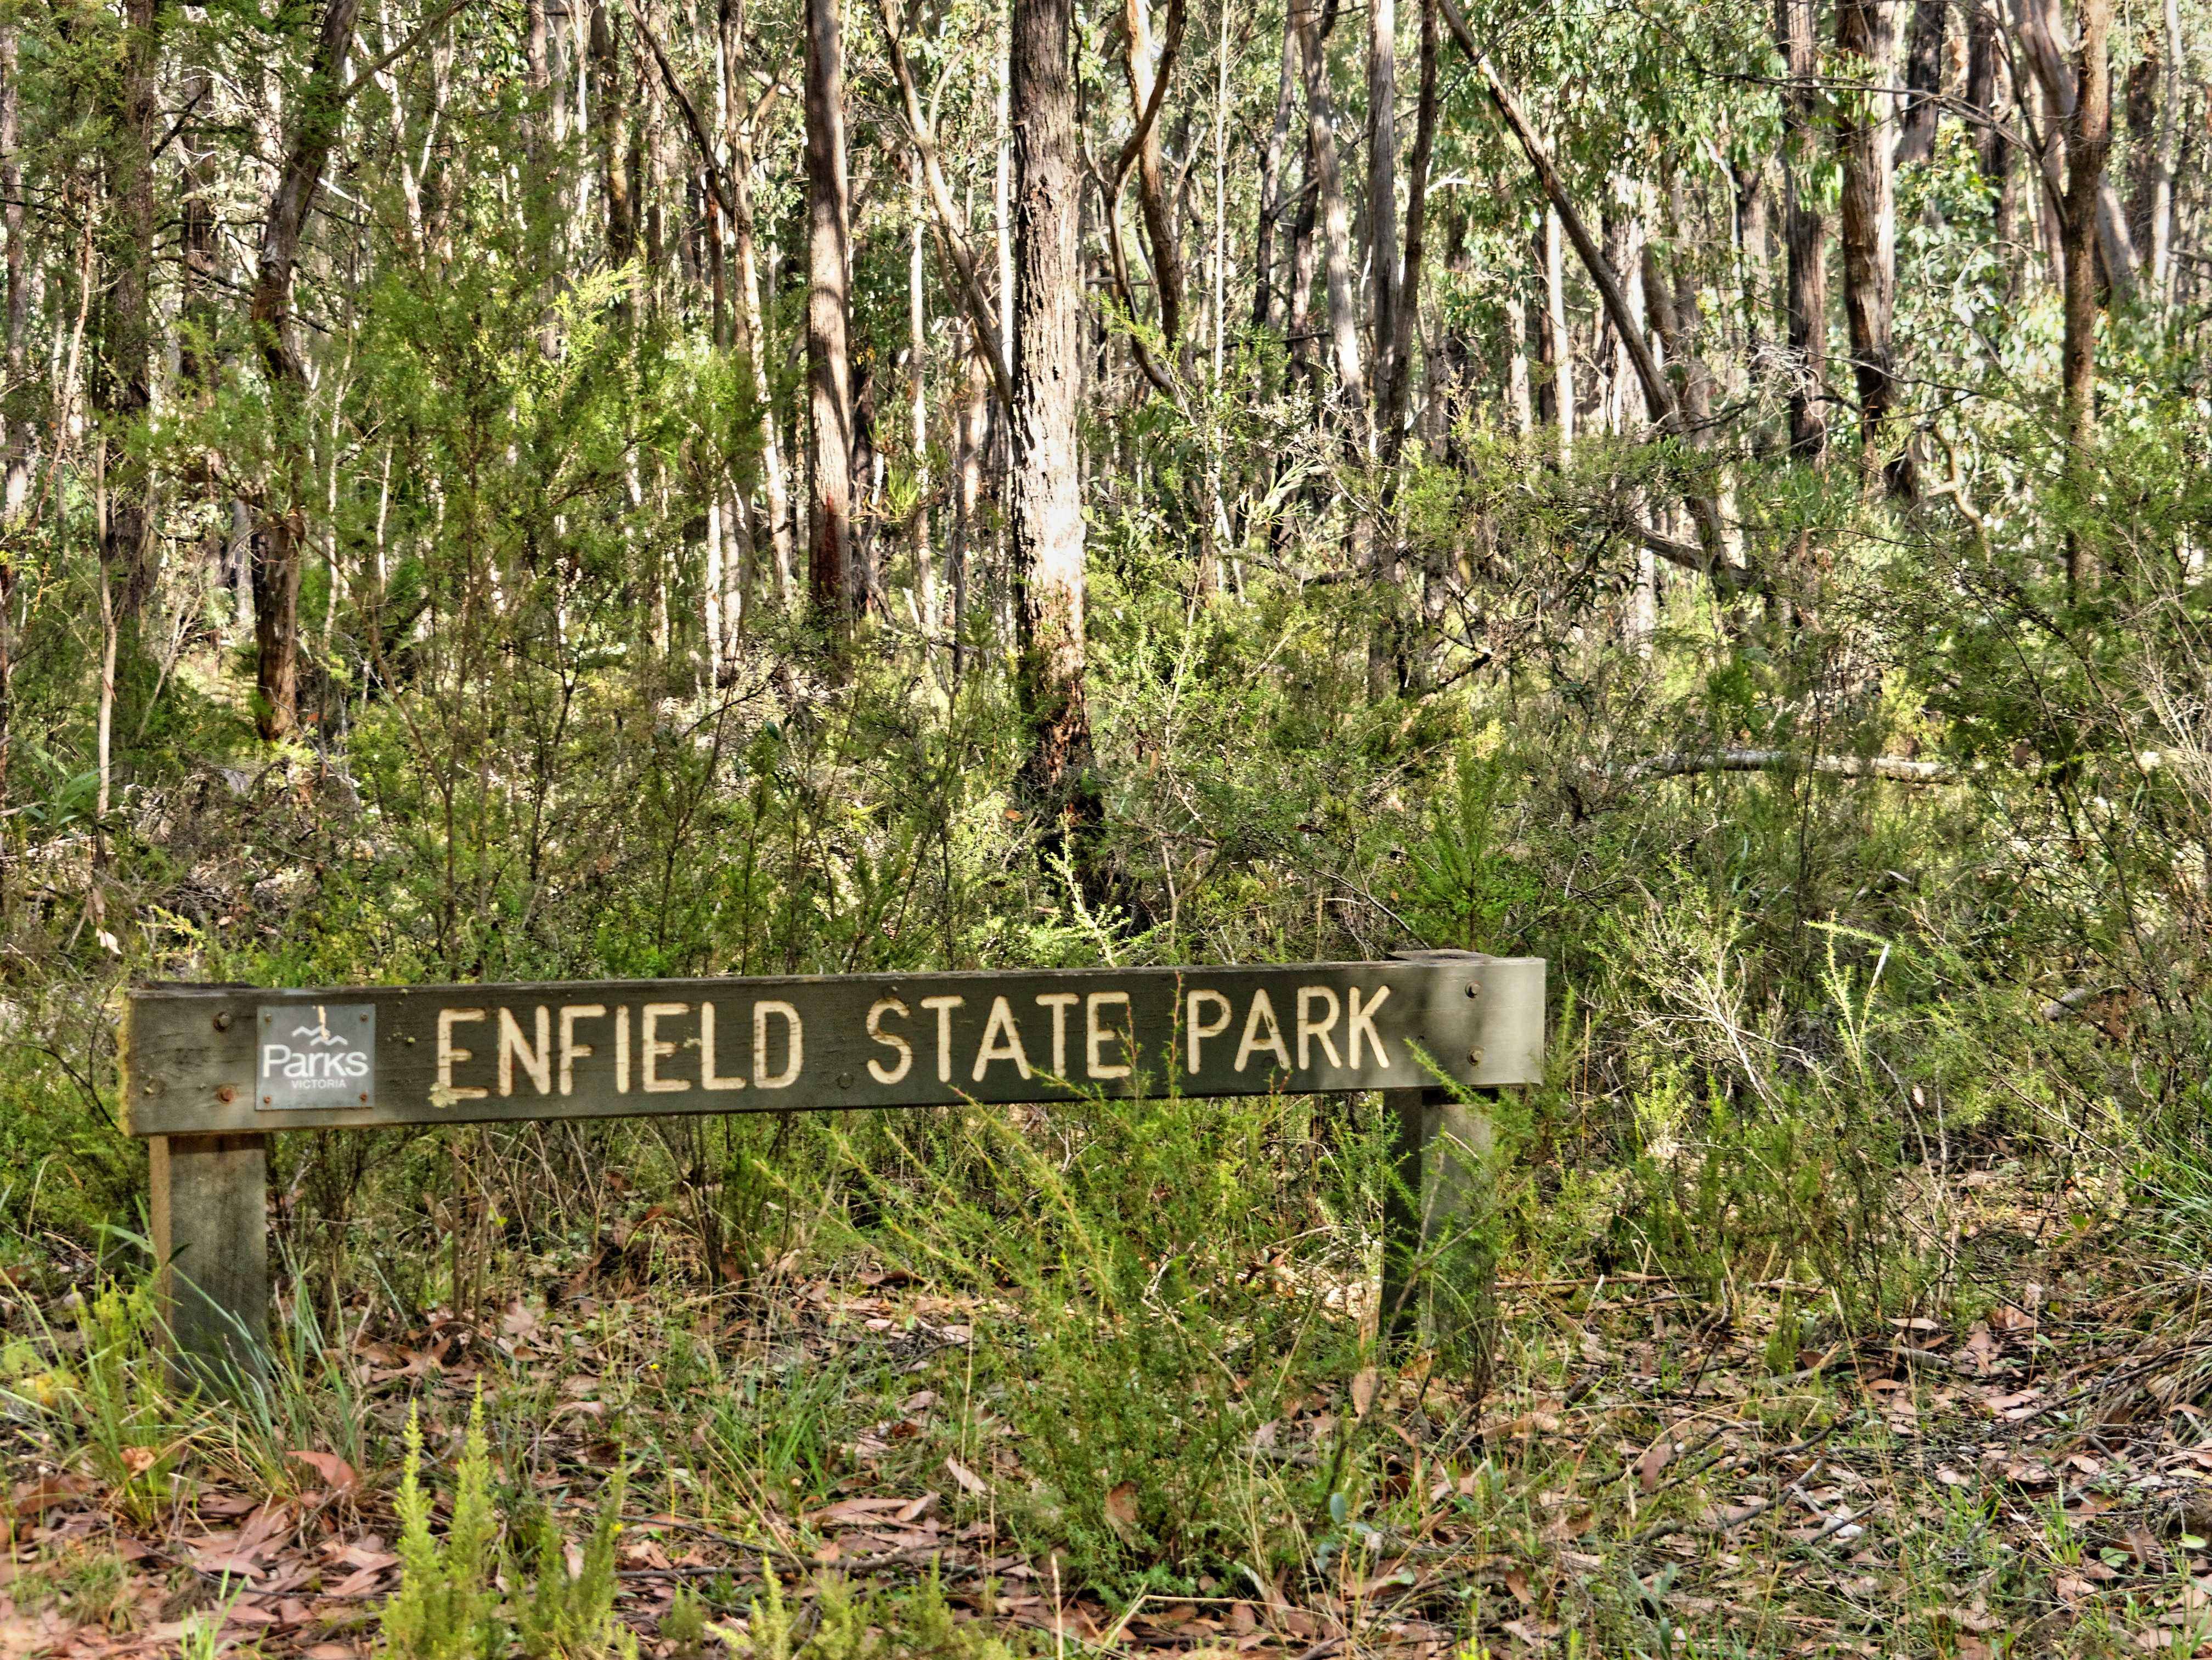 Enfield-state-park.jpeg